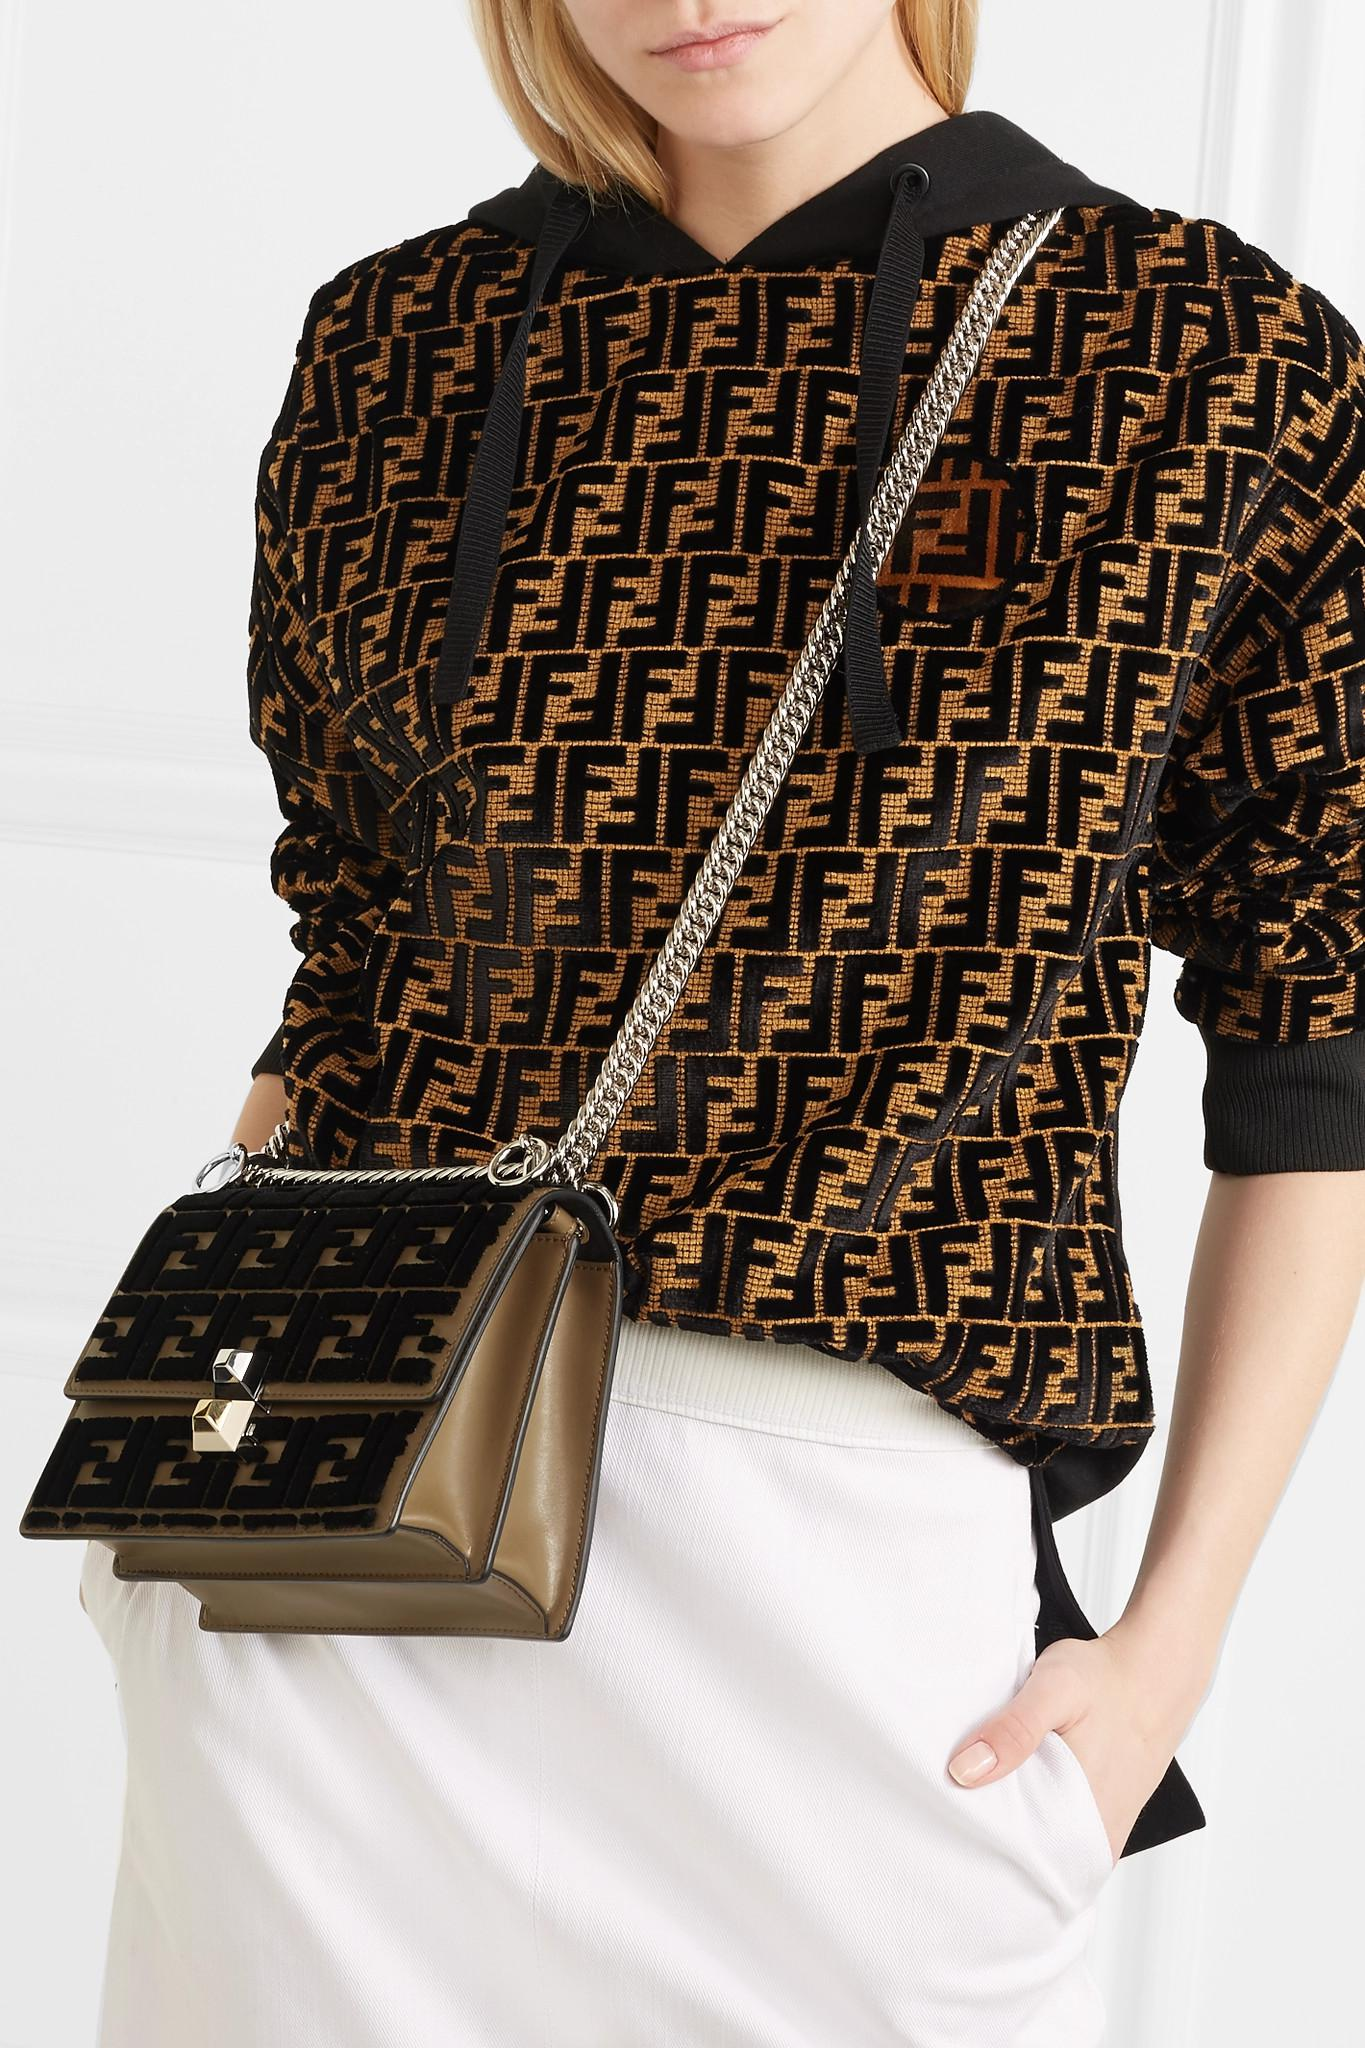 fd96742fc5 Fendi - Brown Kan I Small Flocked Leather Shoulder Bag - Lyst. View  fullscreen